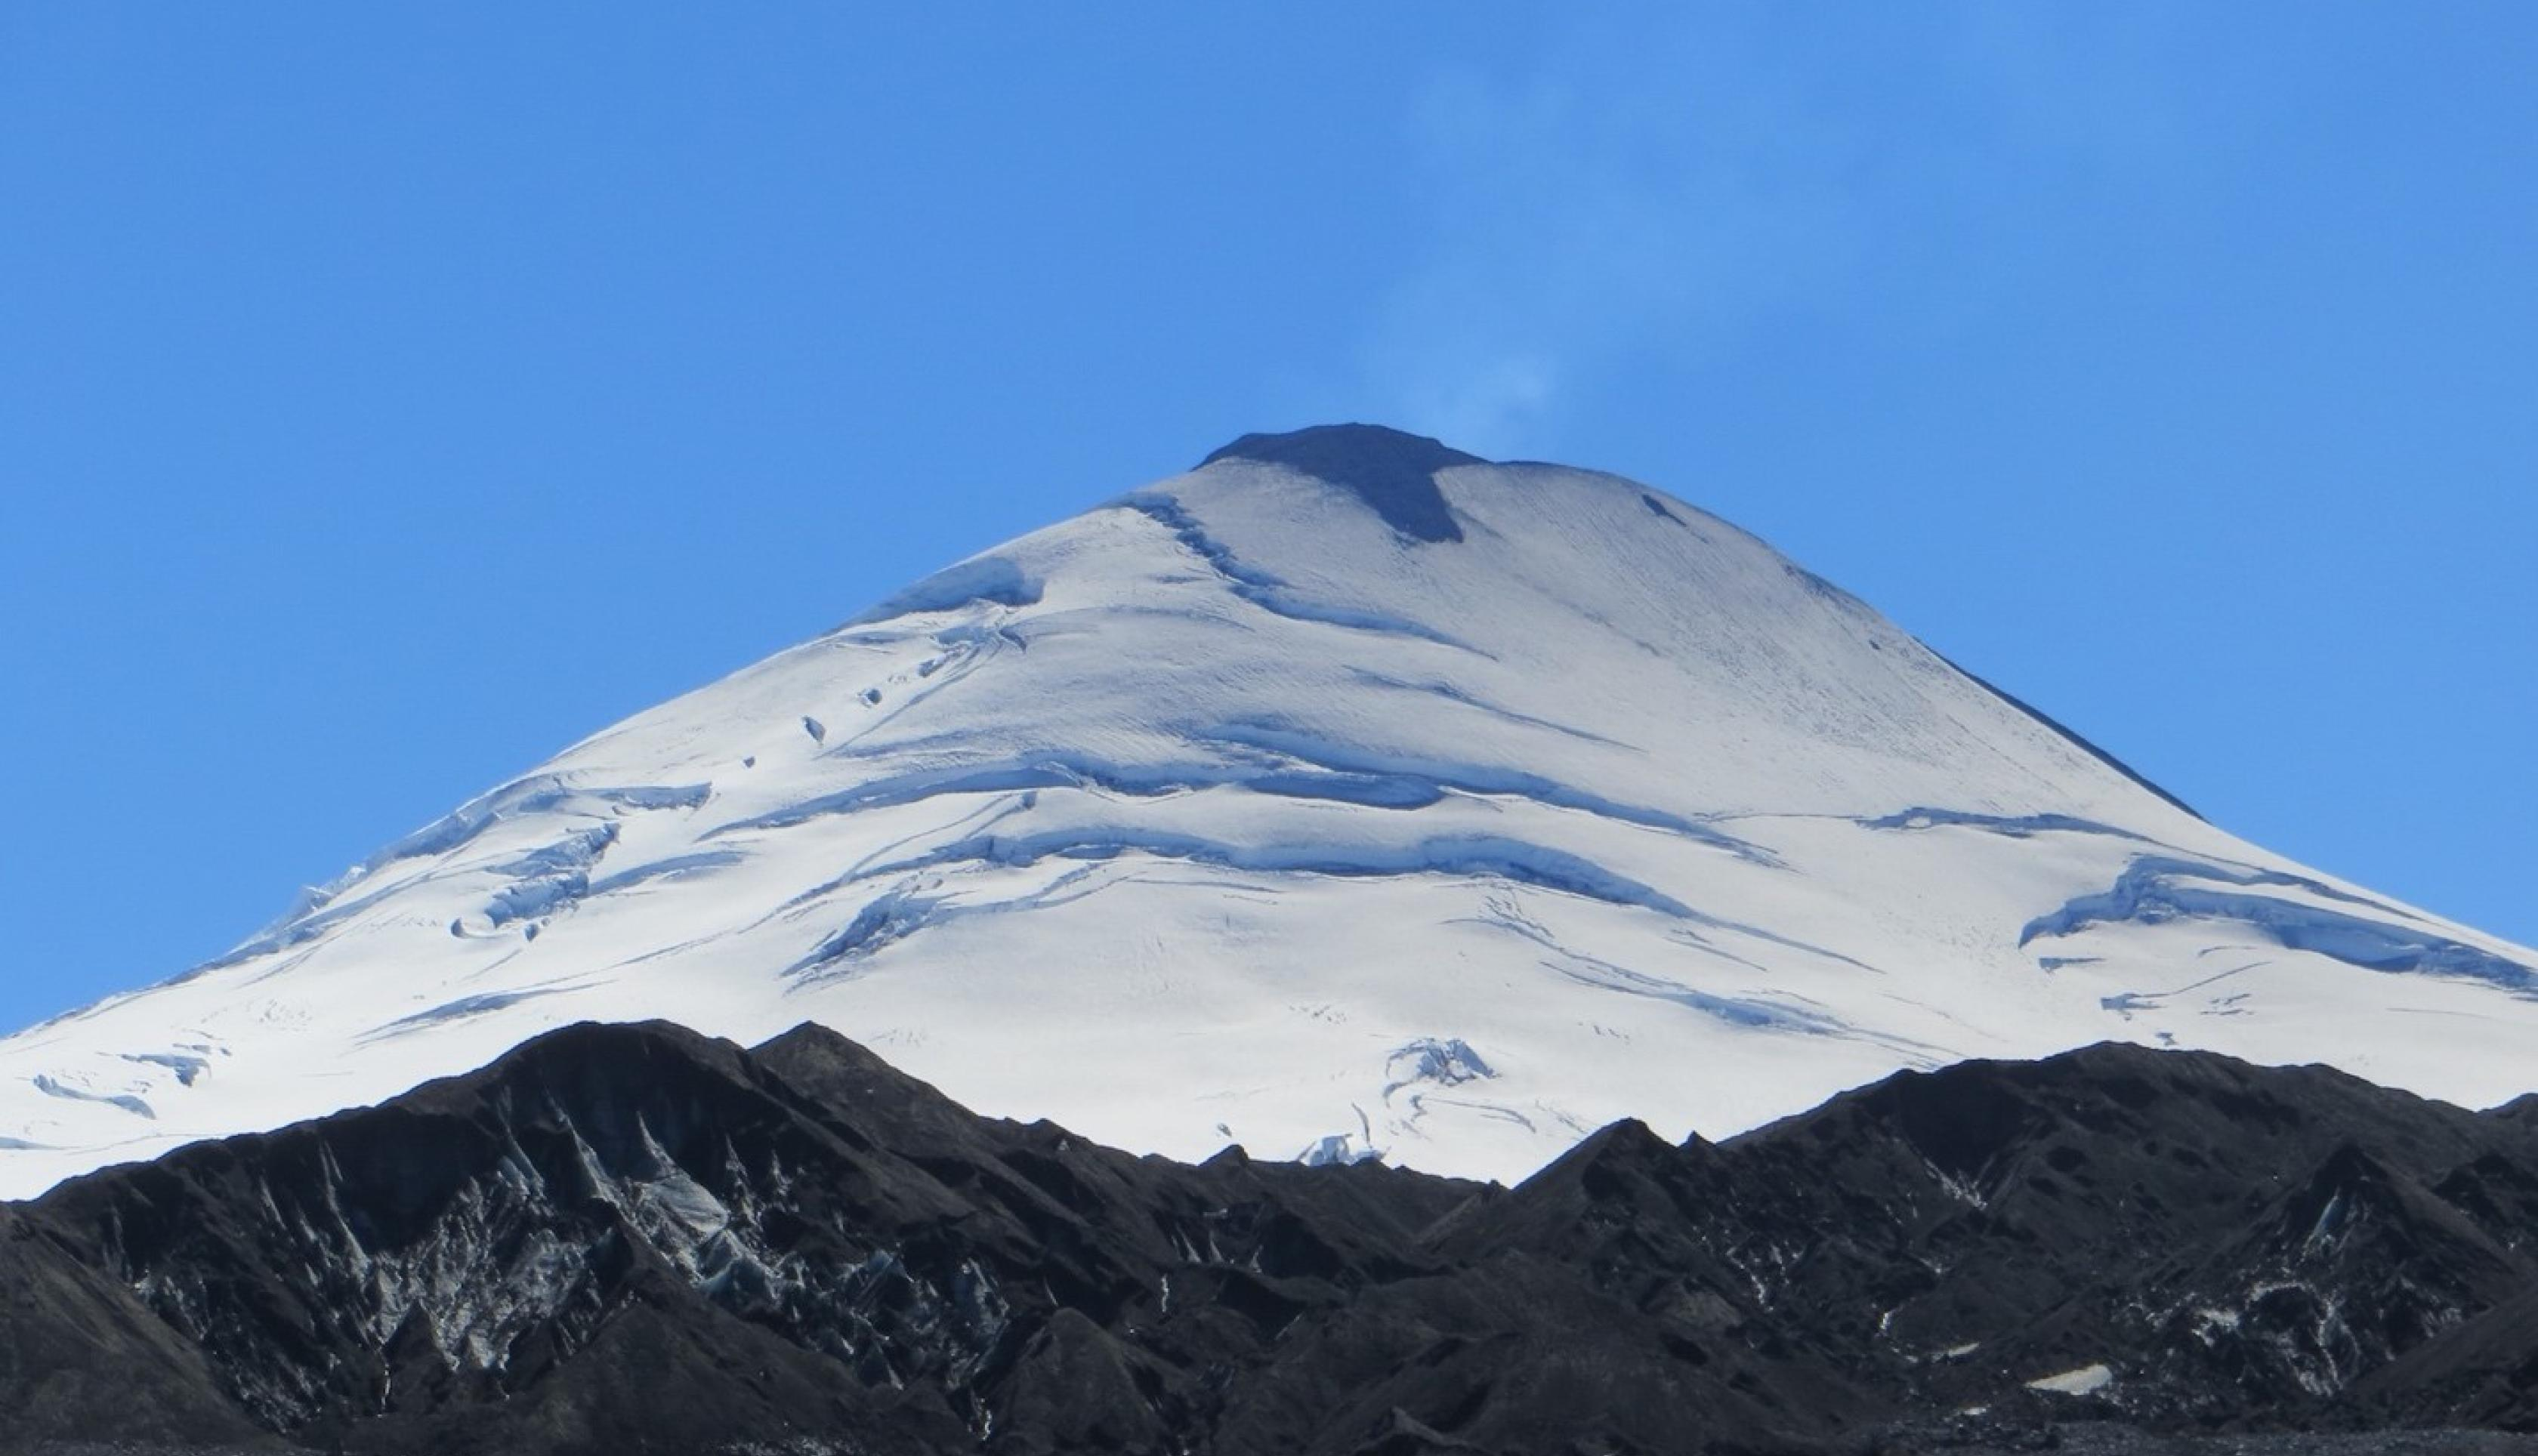 In March 2015, one of Chile's most active volcanoes, known as Villarica, erupted, prompting thousands of people to evacuate the area. Information on volcanic eruptions such as this one can be found in the Smithsonian Institution's Volcanoes of the World database. Credits: NASA, Jeffrey Johnson